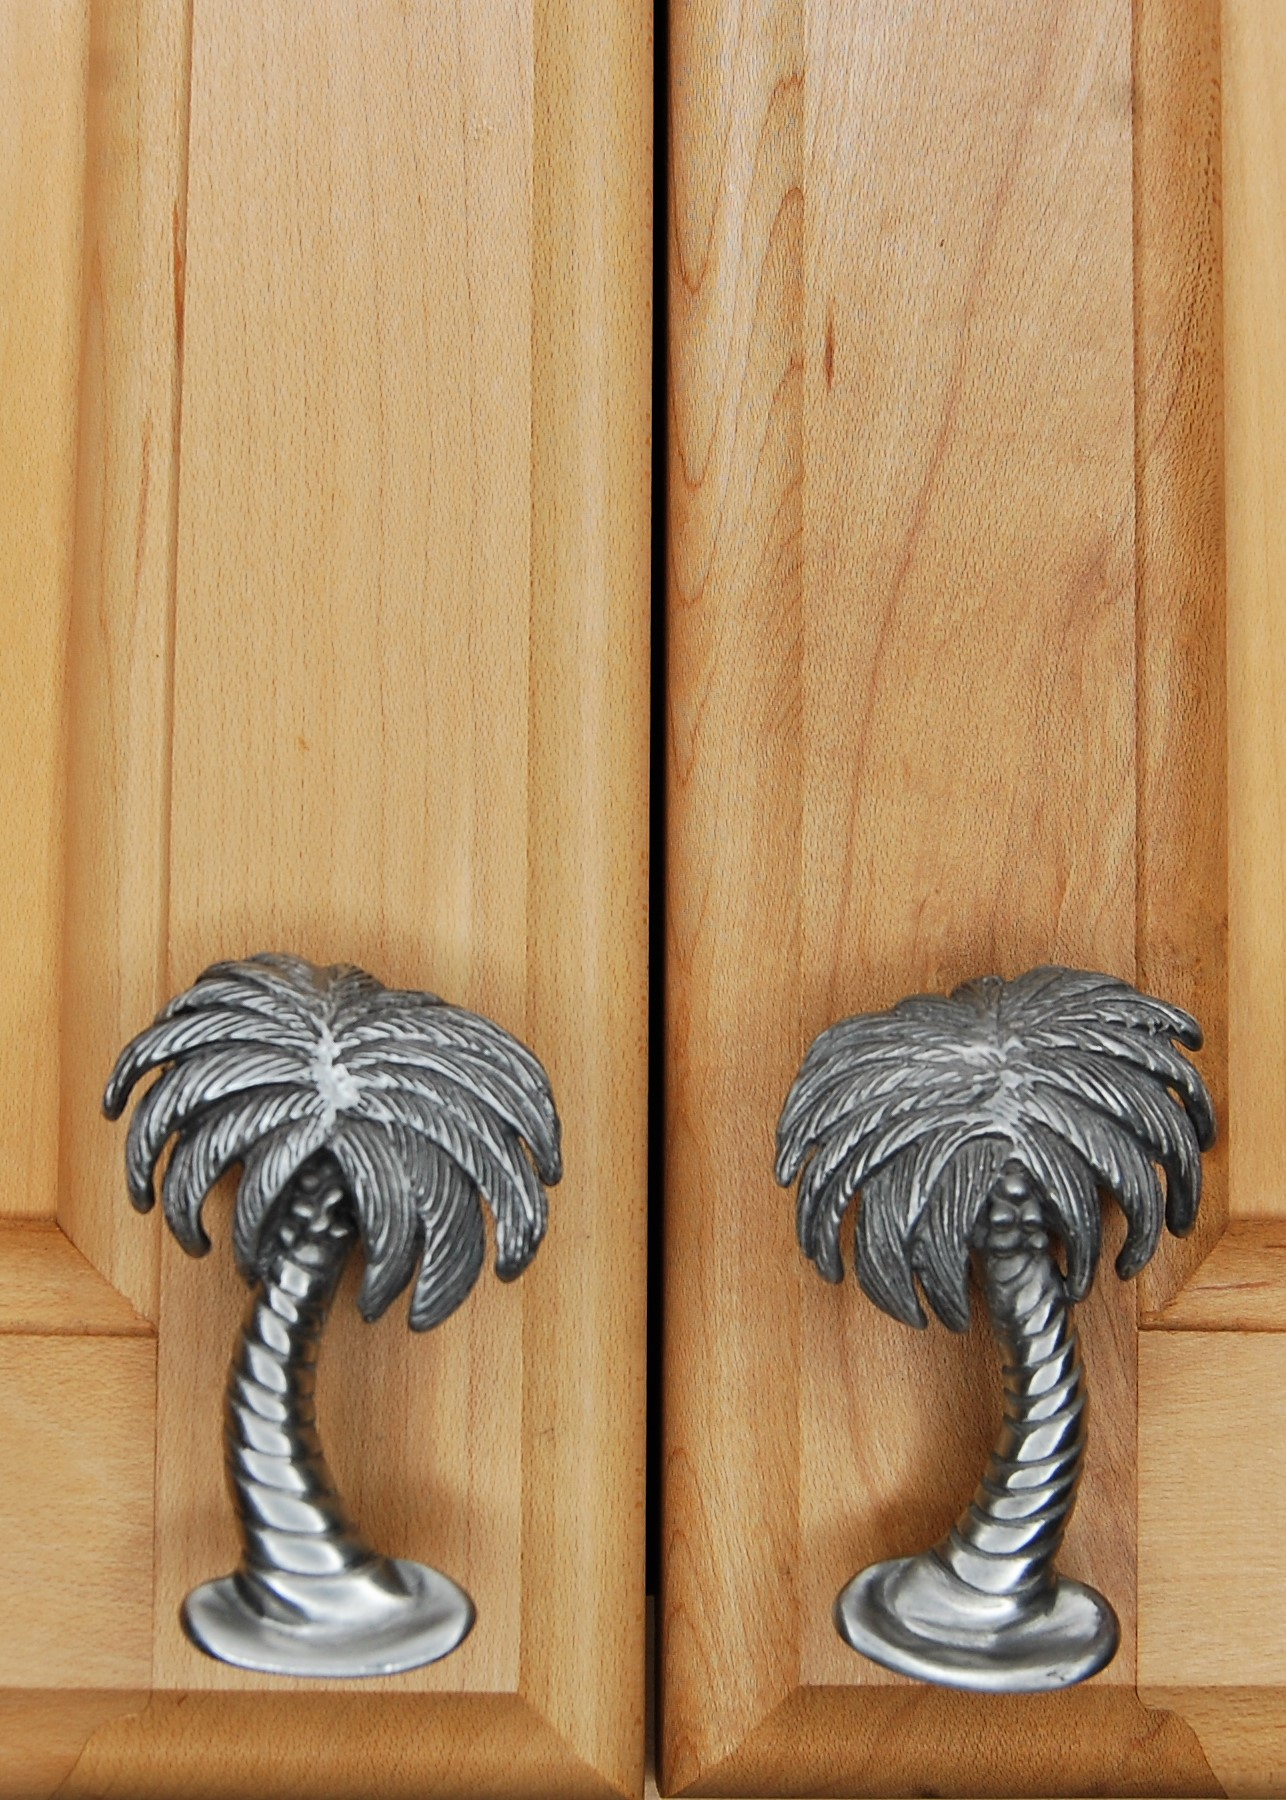 Palm tree cabinet knobs and pulls for your coastal and beach decor